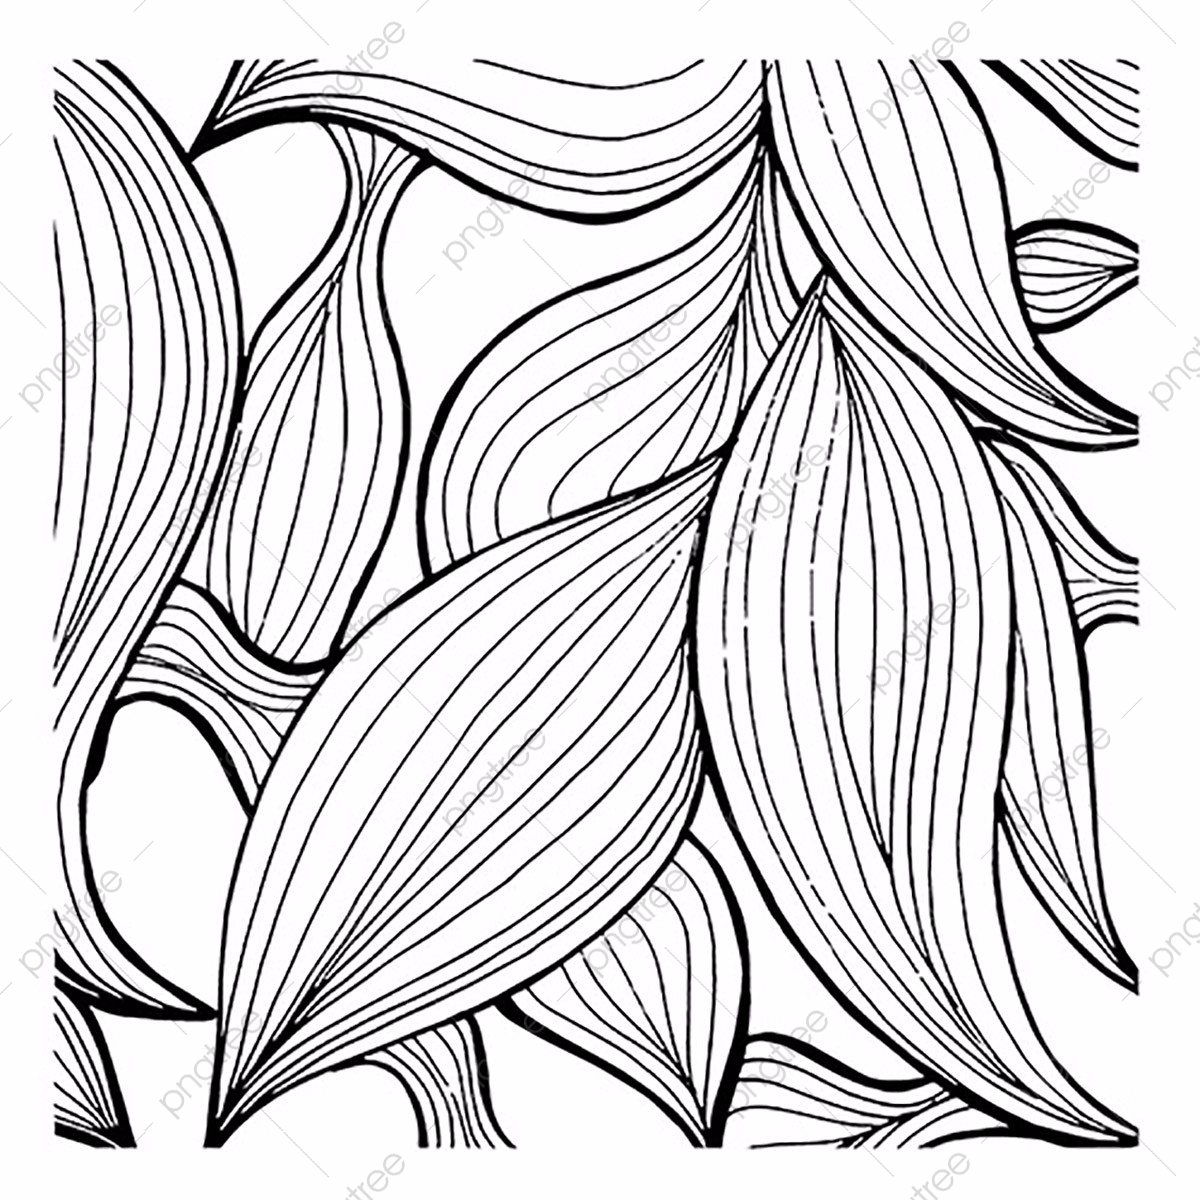 pngtree simple black and white patterns backgrounds png image